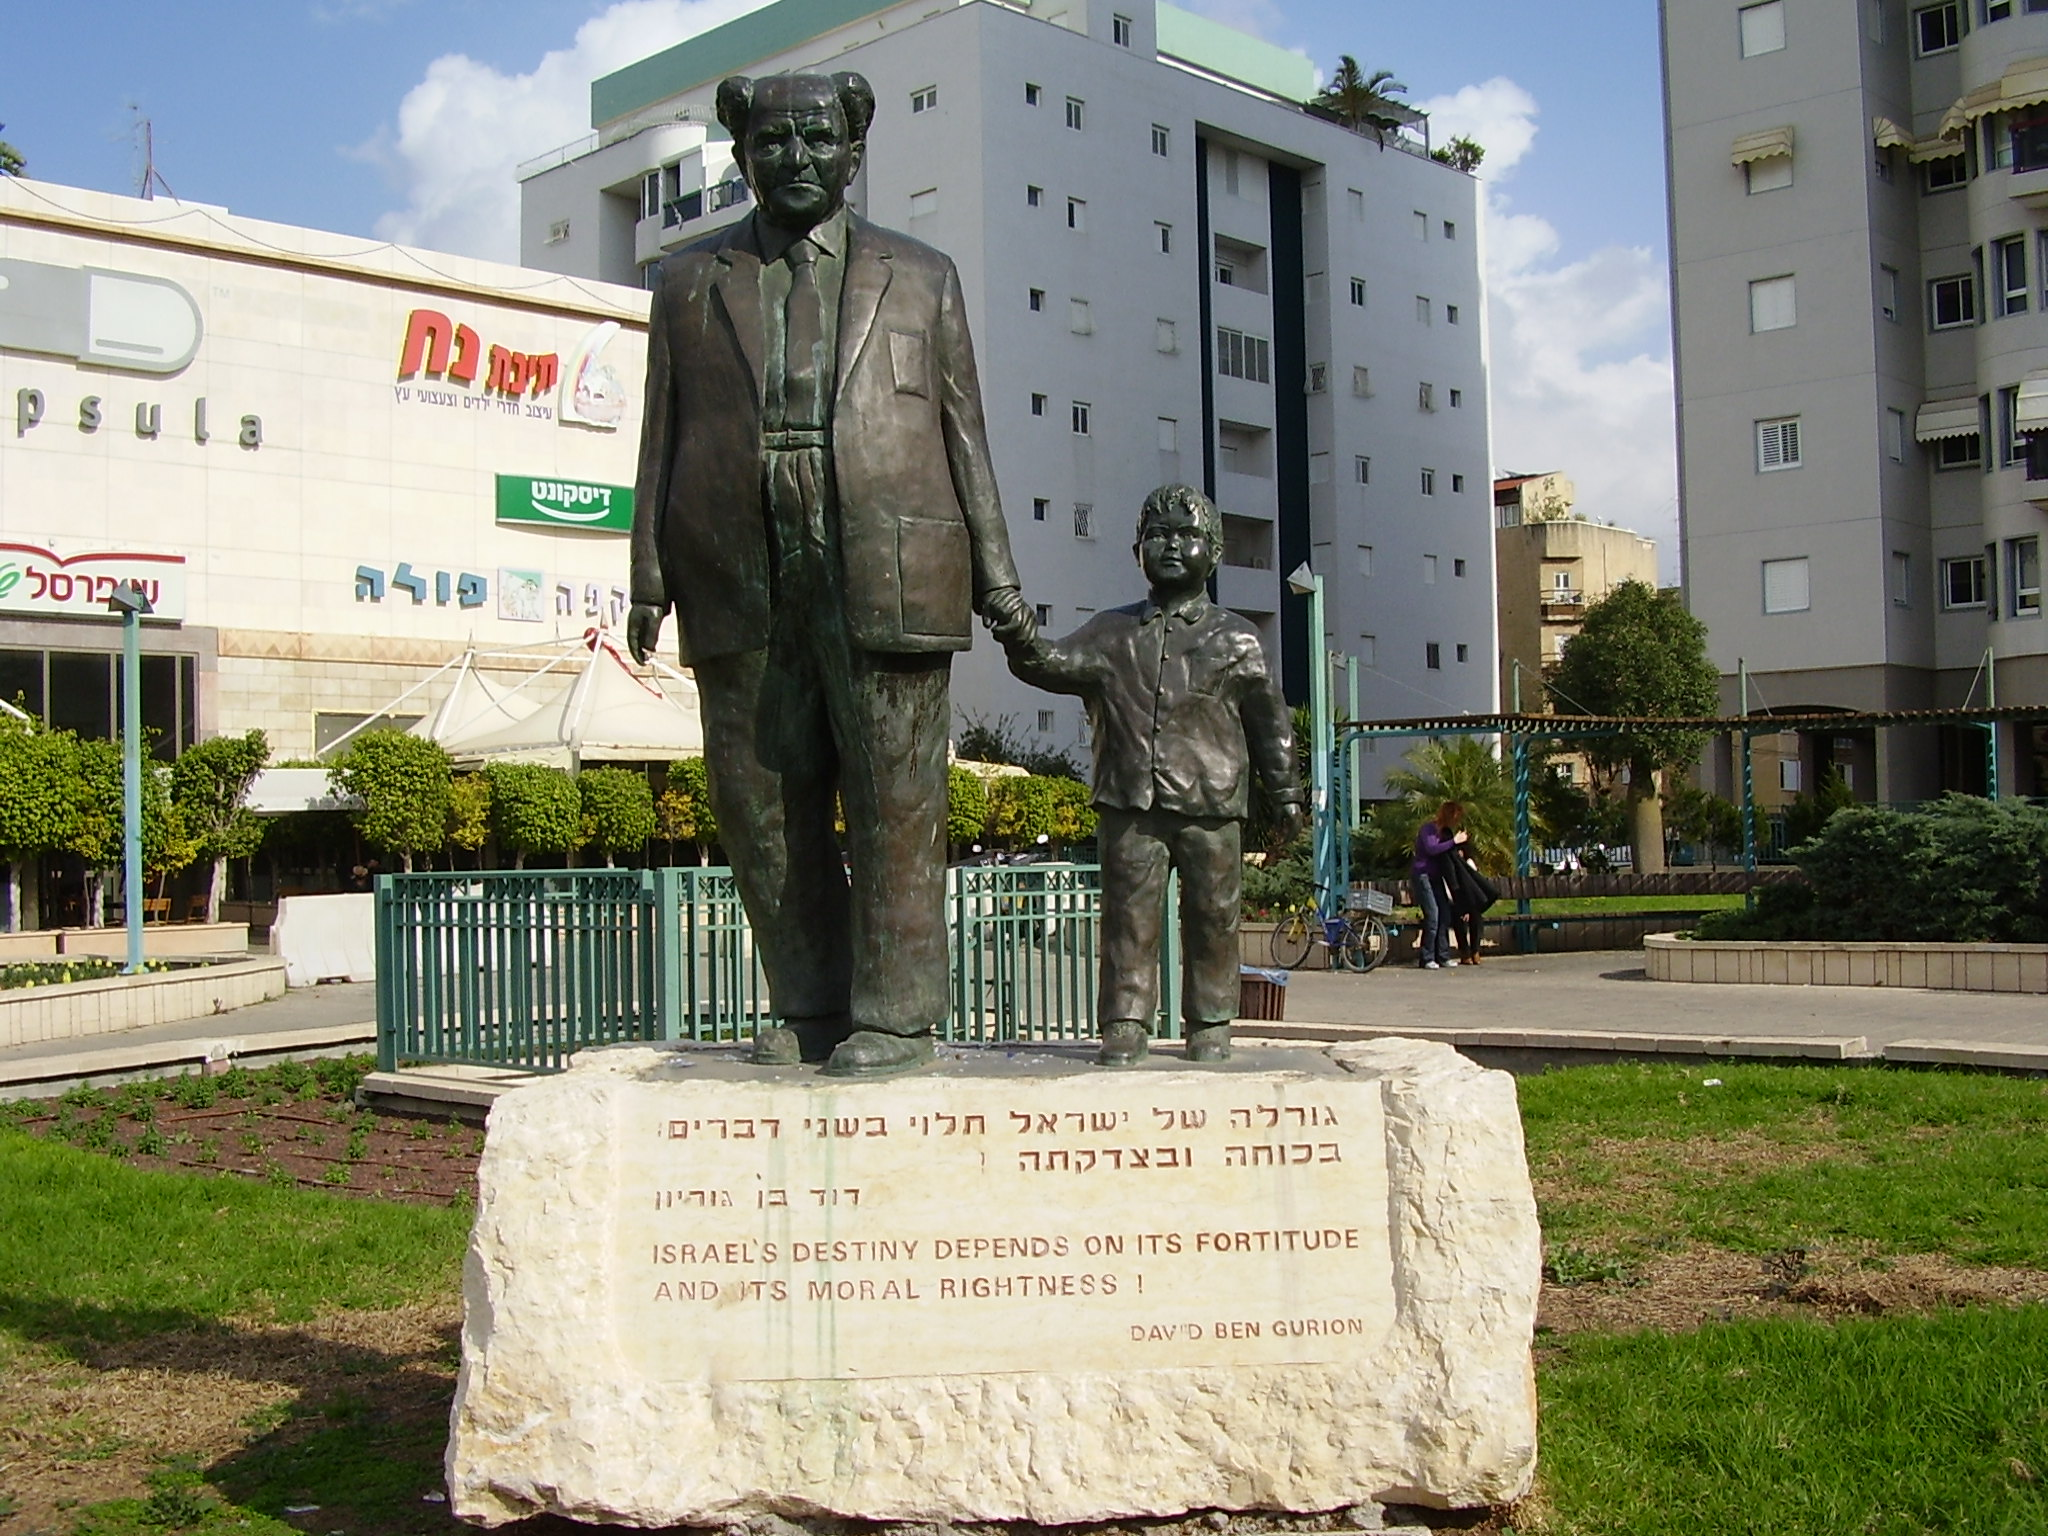 israeli map with File Statue Of David Ben Gurion In Rishon Lezion  Israel on Denmark furthermore E424b44960f0e5ad309ddad8d35b42b8 together with File oldtidens israel   judea furthermore Libanon furthermore AUF Boikott Israel 22 07 2012.